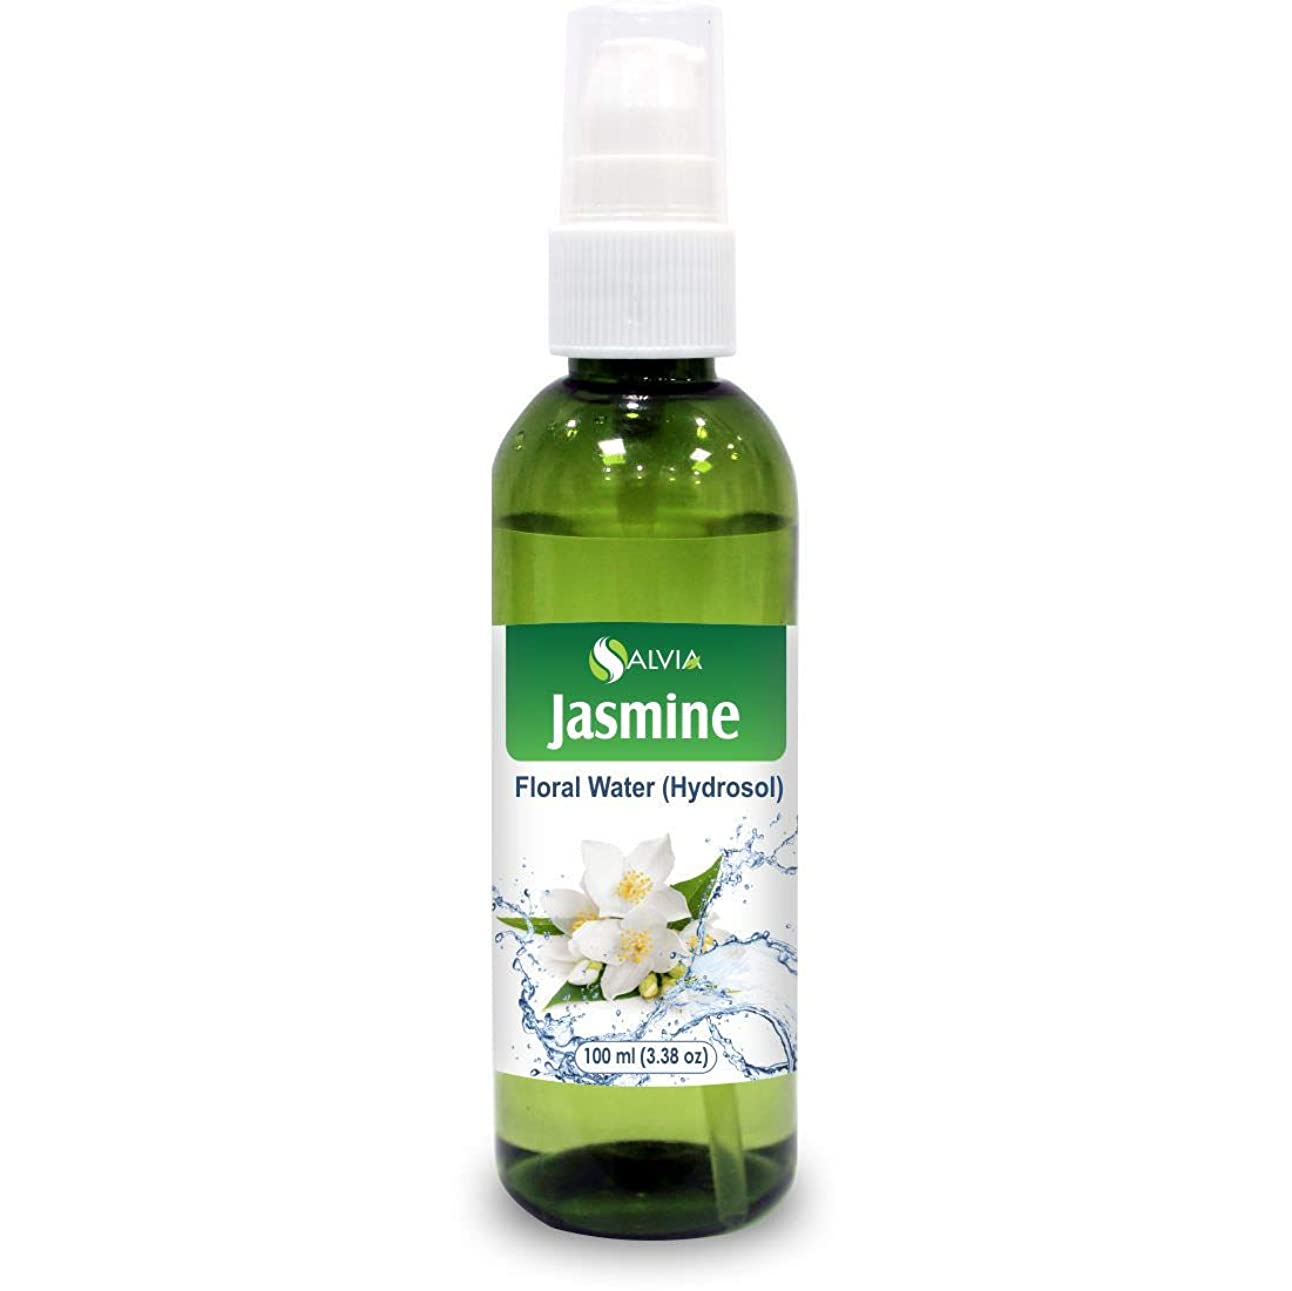 Jasmine Floral Water 100ml (Hydrosol) 100% Pure And Natural